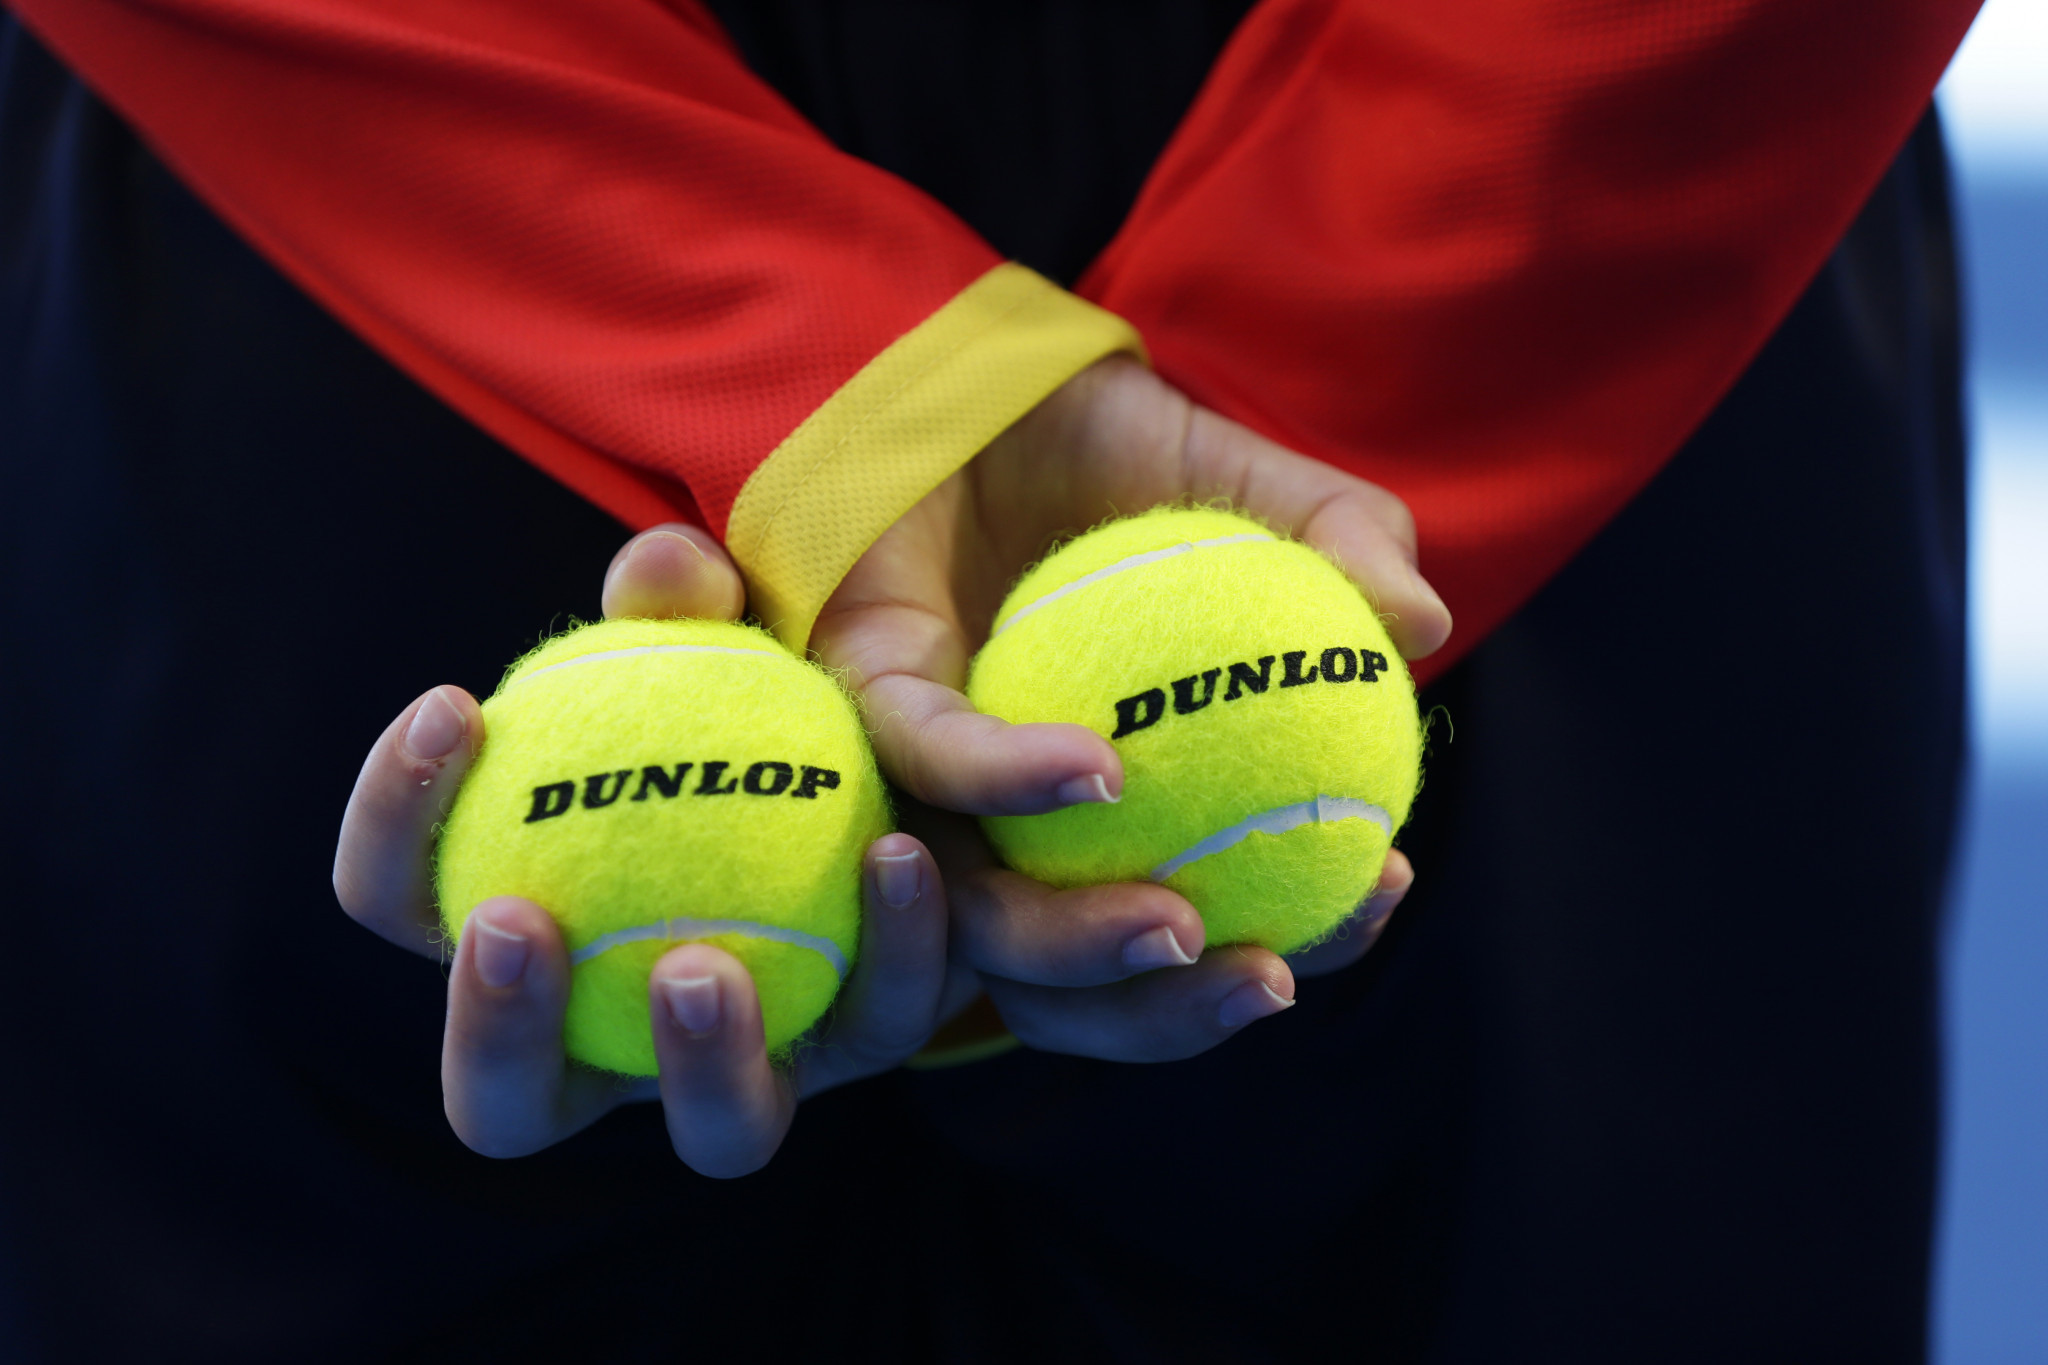 Dunlop and ATP announce five-year partnership